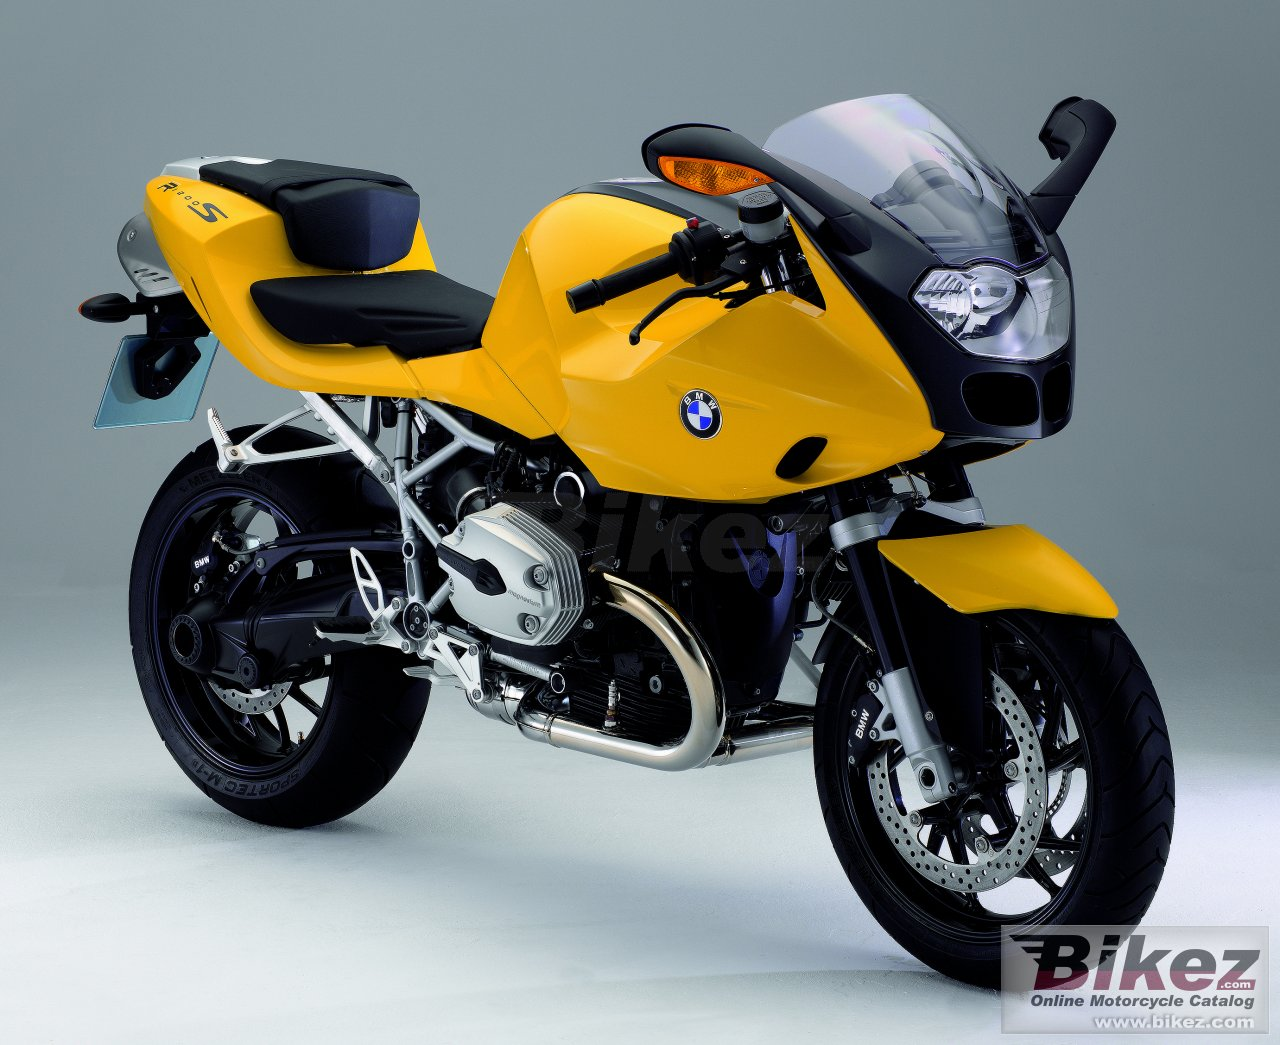 Big BMW r1200s picture and wallpaper from Bikez.com